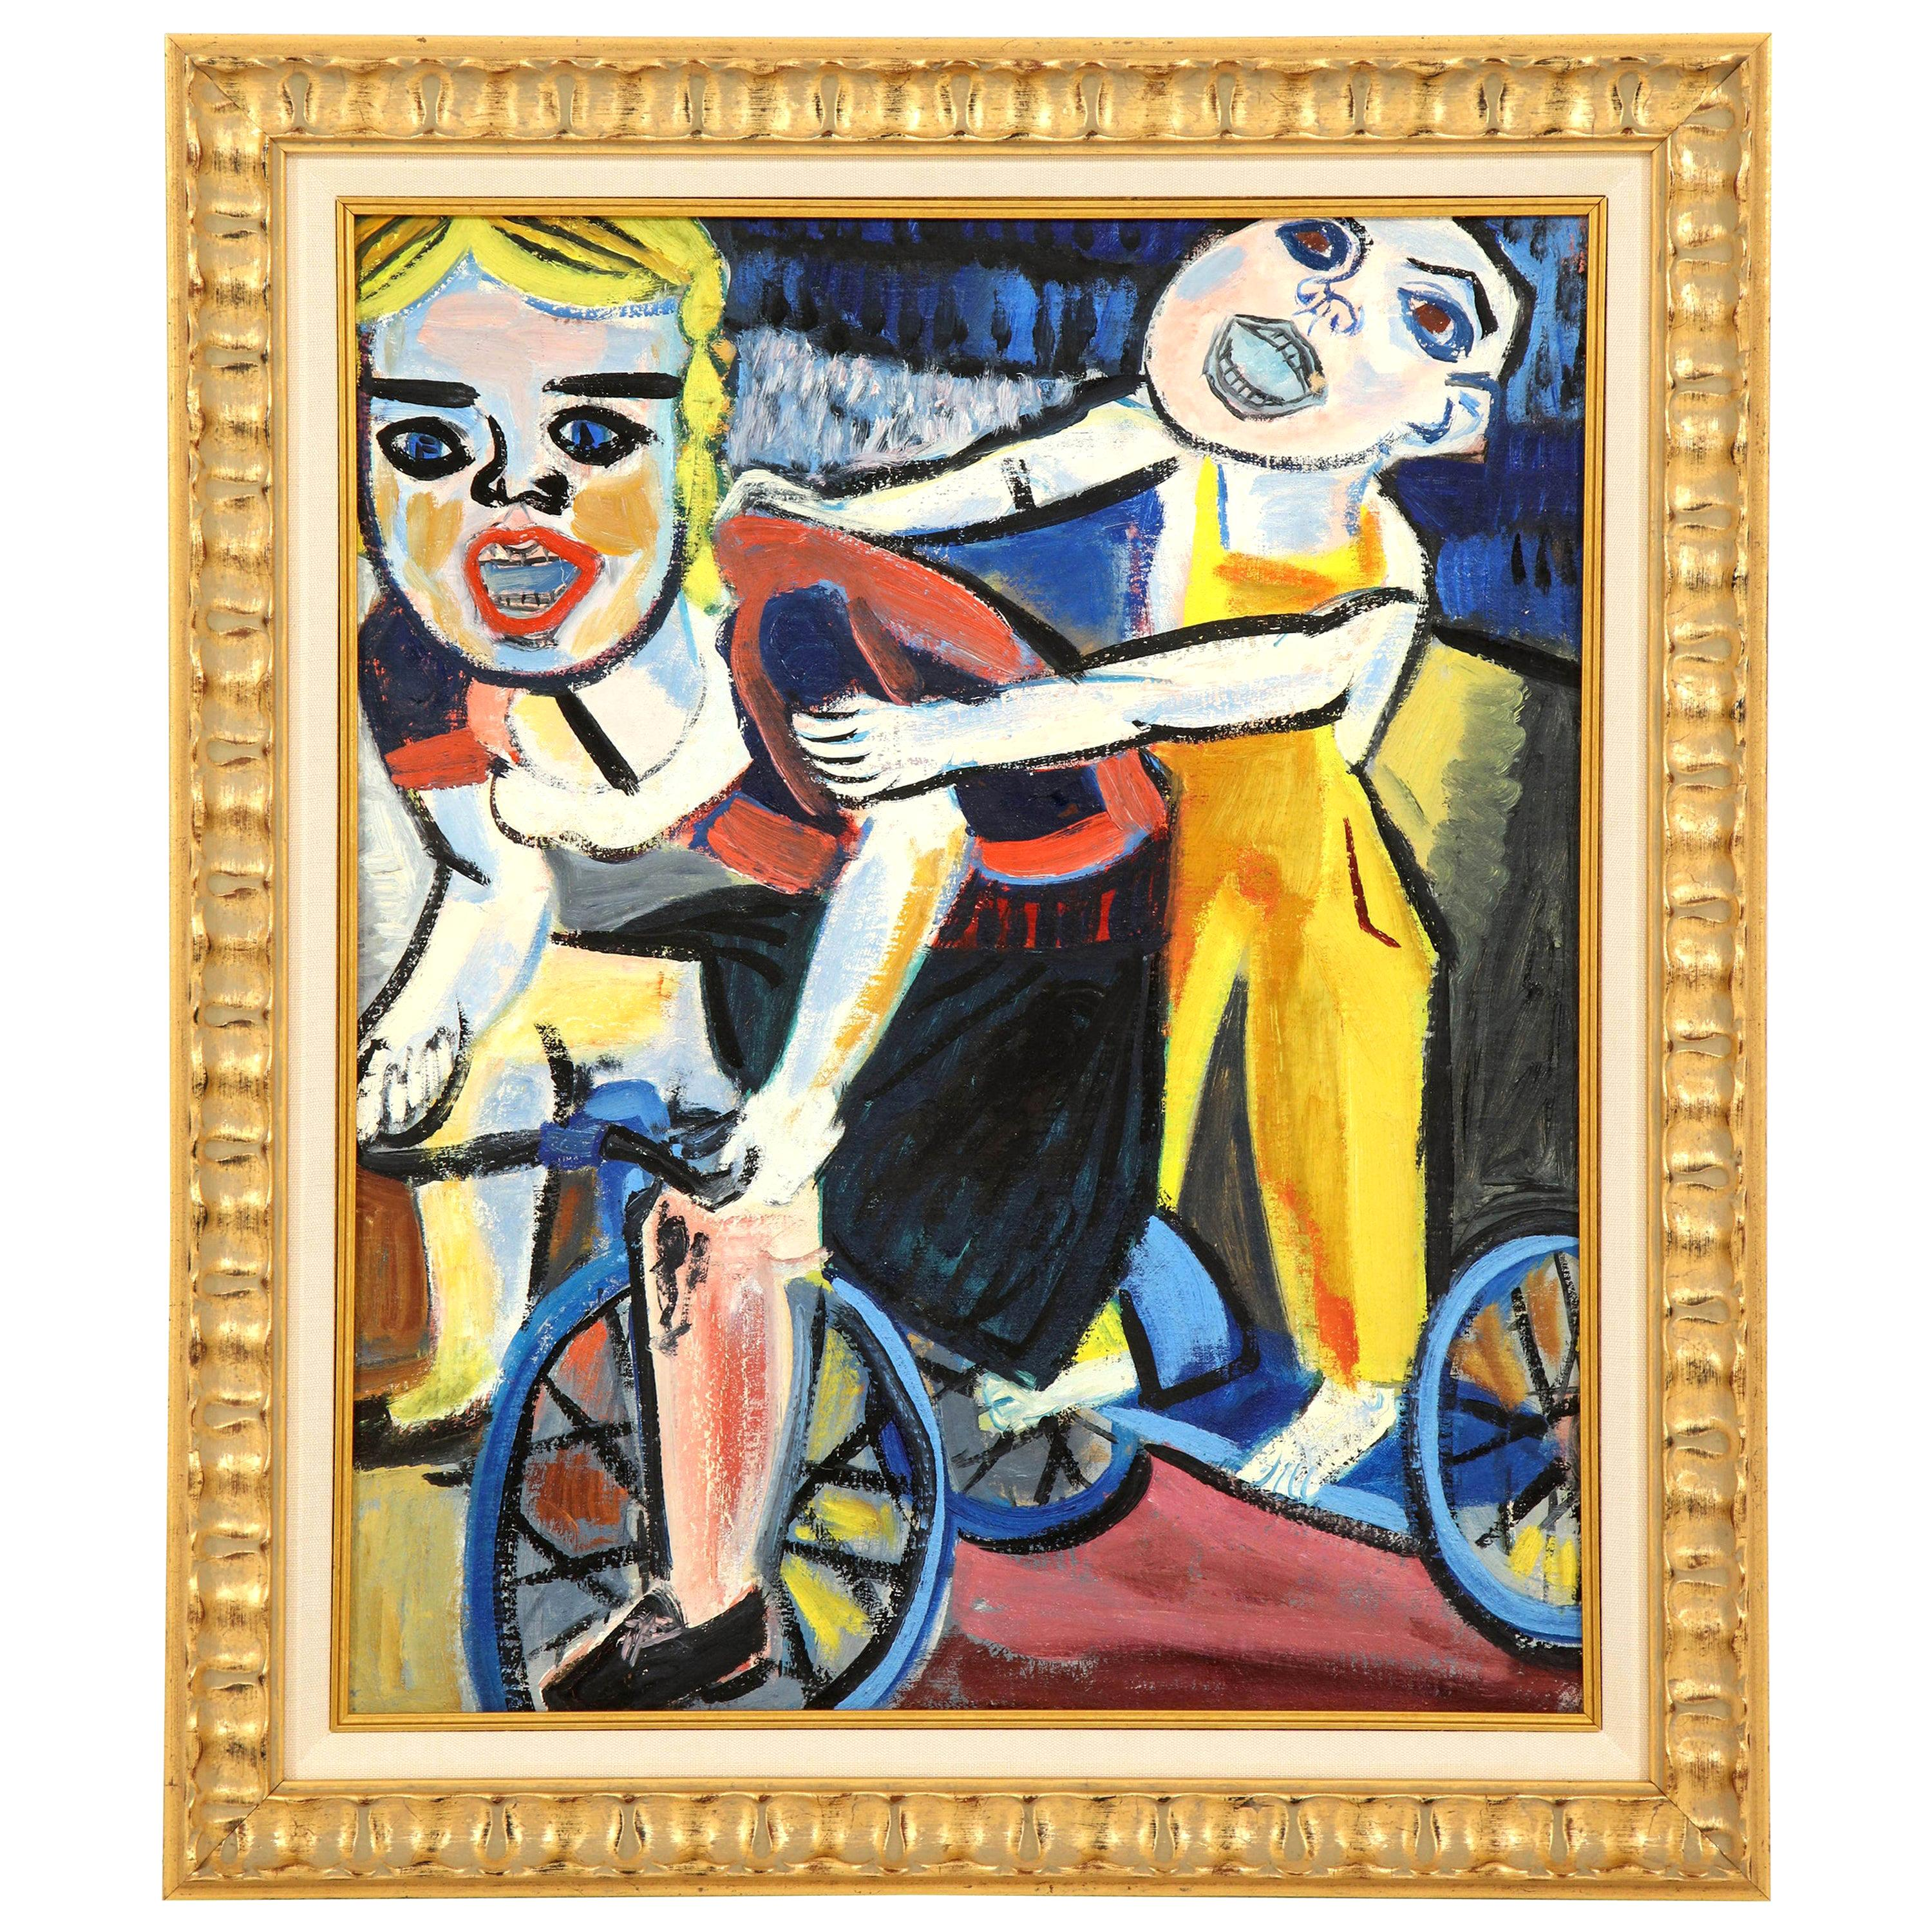 Painting from the 1940s, Red, Blue and Yellow, Mid-Century Art, New Framing